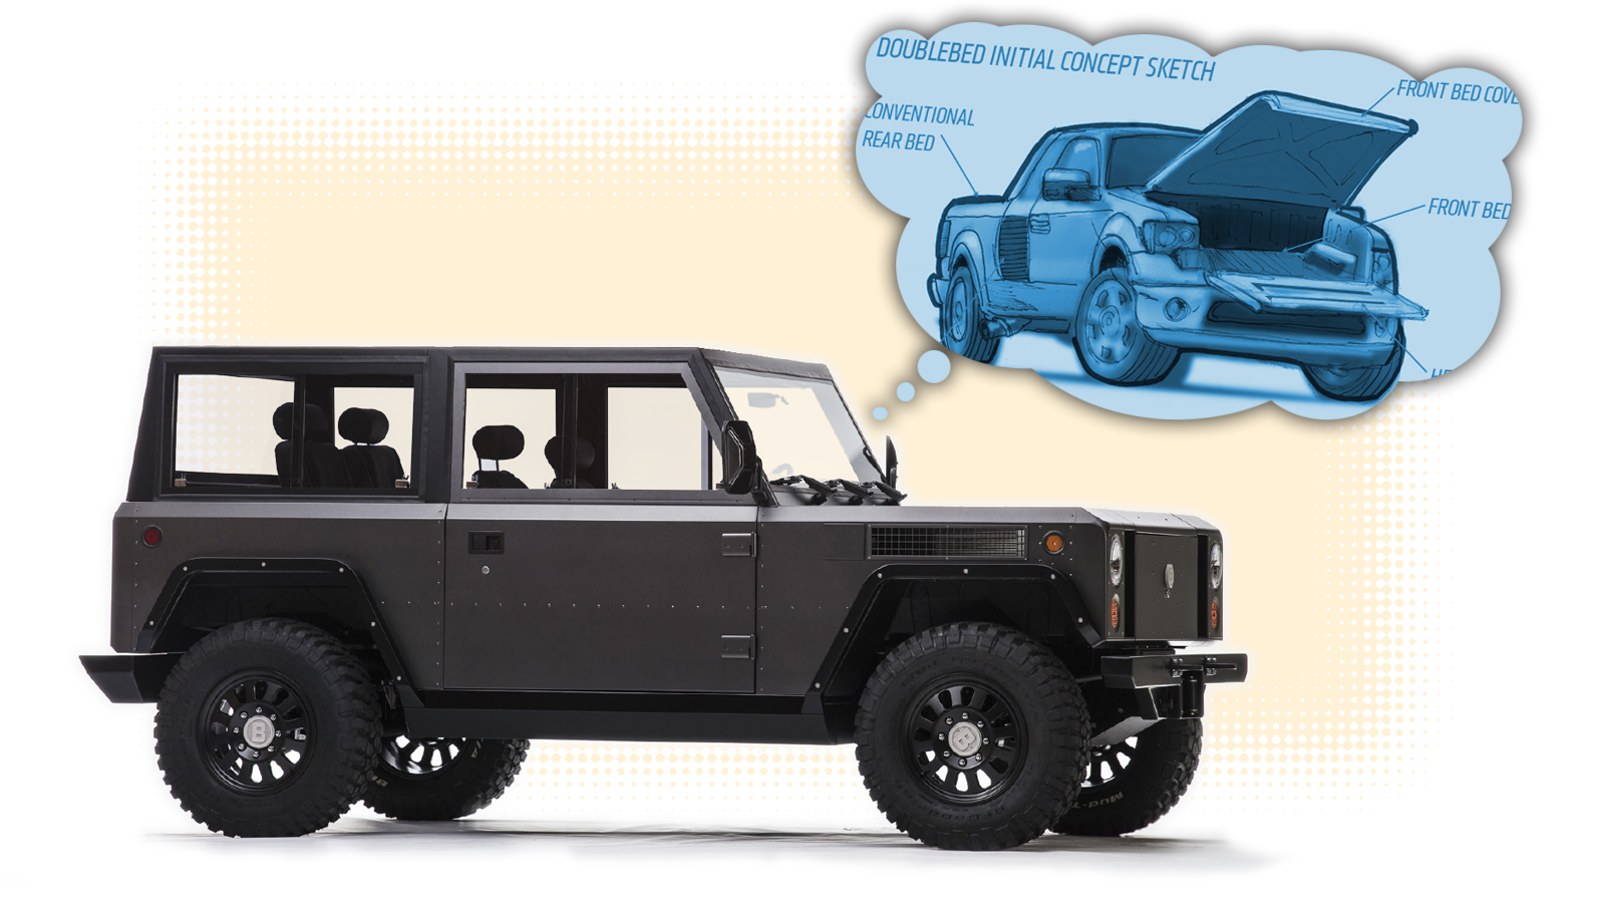 Bollinger B1 Price >> The Bollinger Electric Truck Uses An Idea I Had Years Ago And I Love It